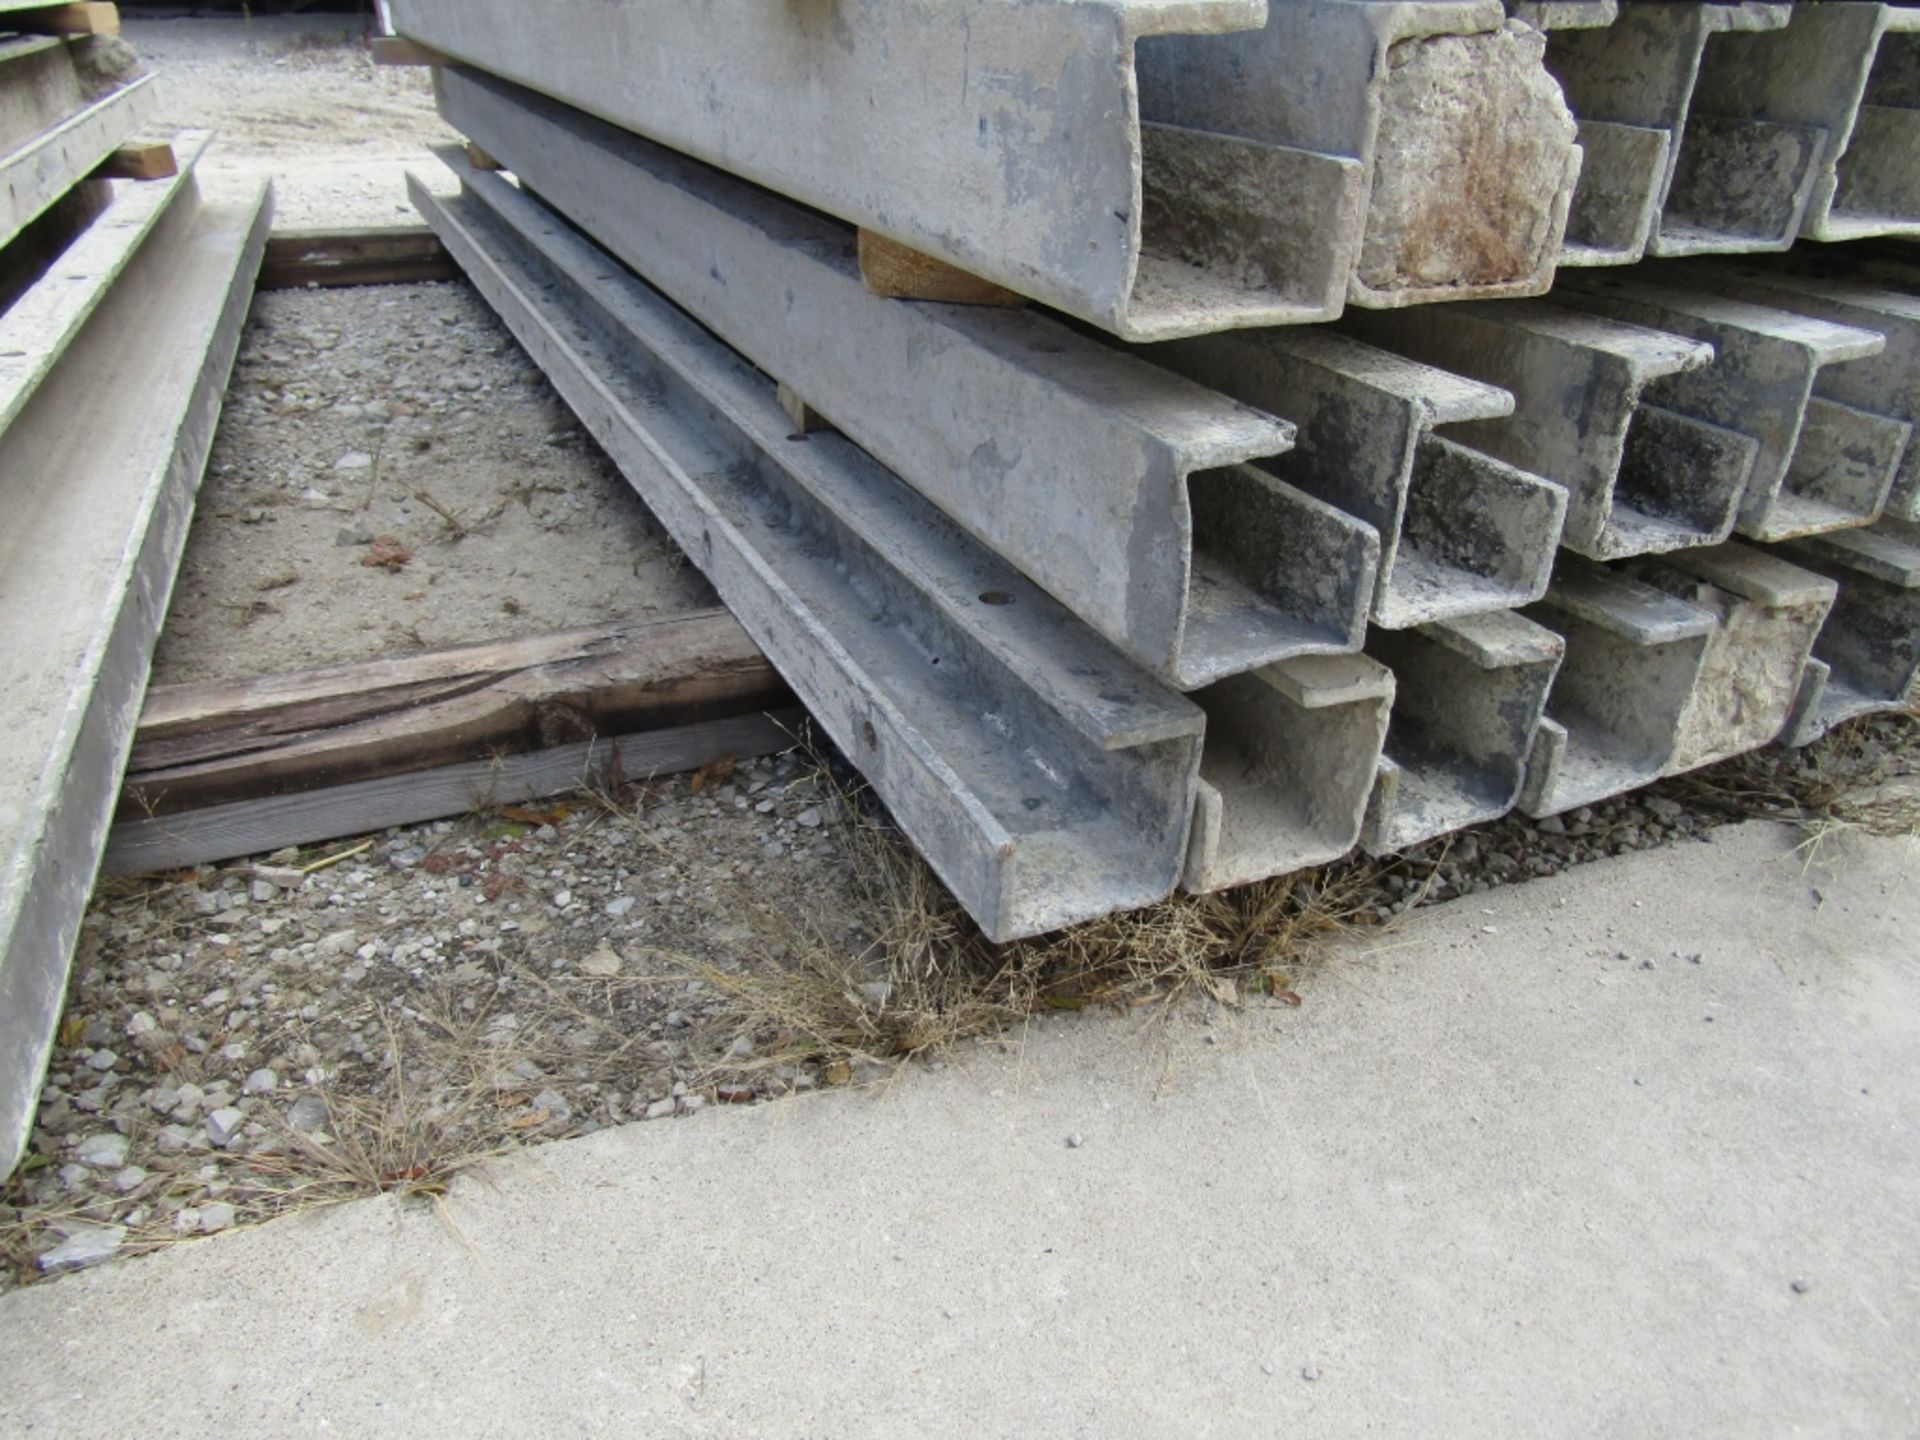 """(15) 4"""" x 4"""" x 8' Durand Concrete Forms, Inside Corners, Smooth 6-12 Hole Pattern, Full - Image 2 of 3"""